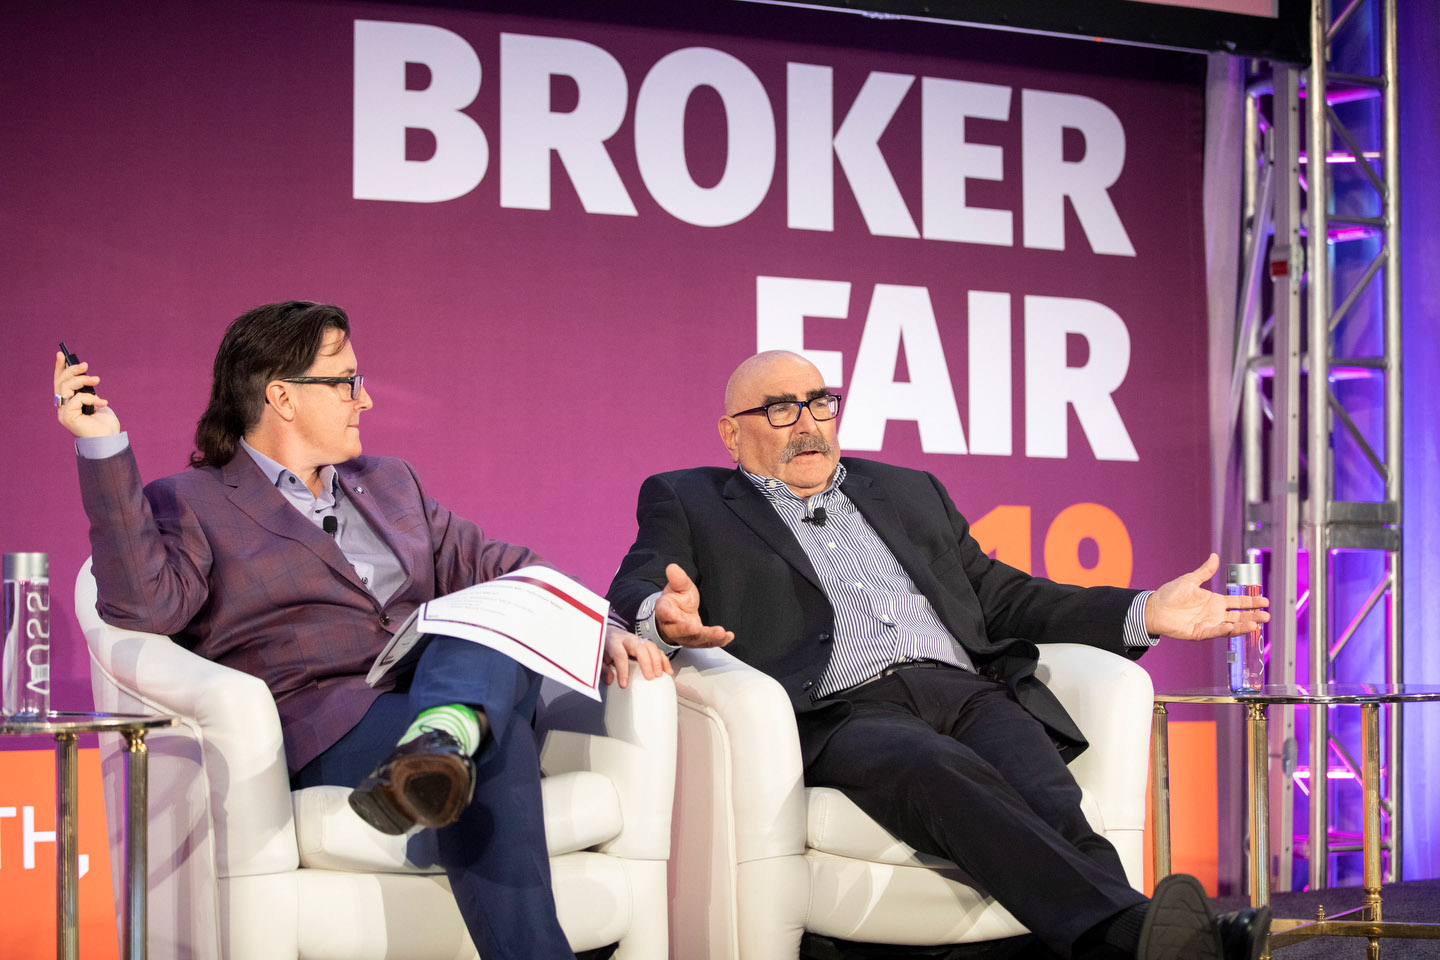 Broker Fair 2019 - Presented by deBanked - 446